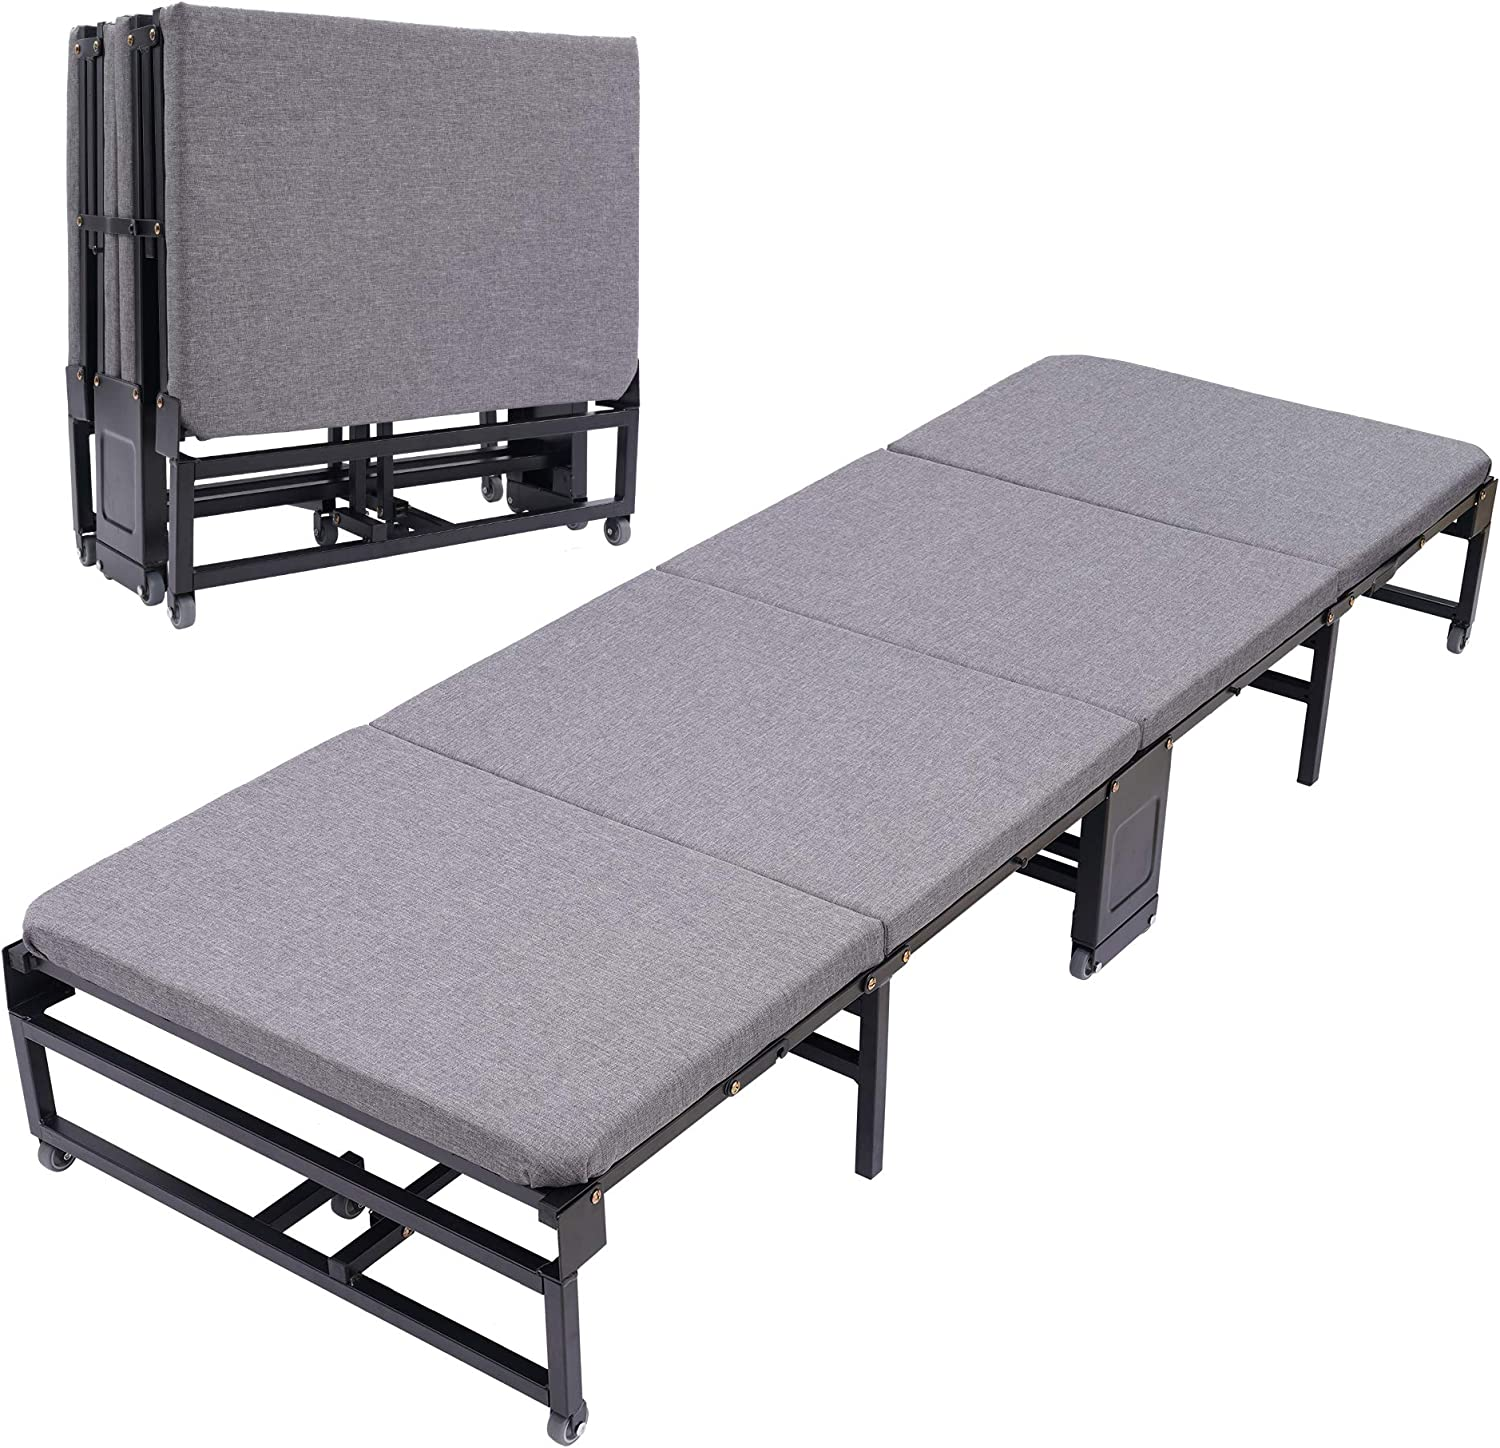 Portable Folding Bed with Wheels,Home Simple Lunch Bed Office Adult Marching Cot Siesta Lounge Chair Hospital Escort Bed